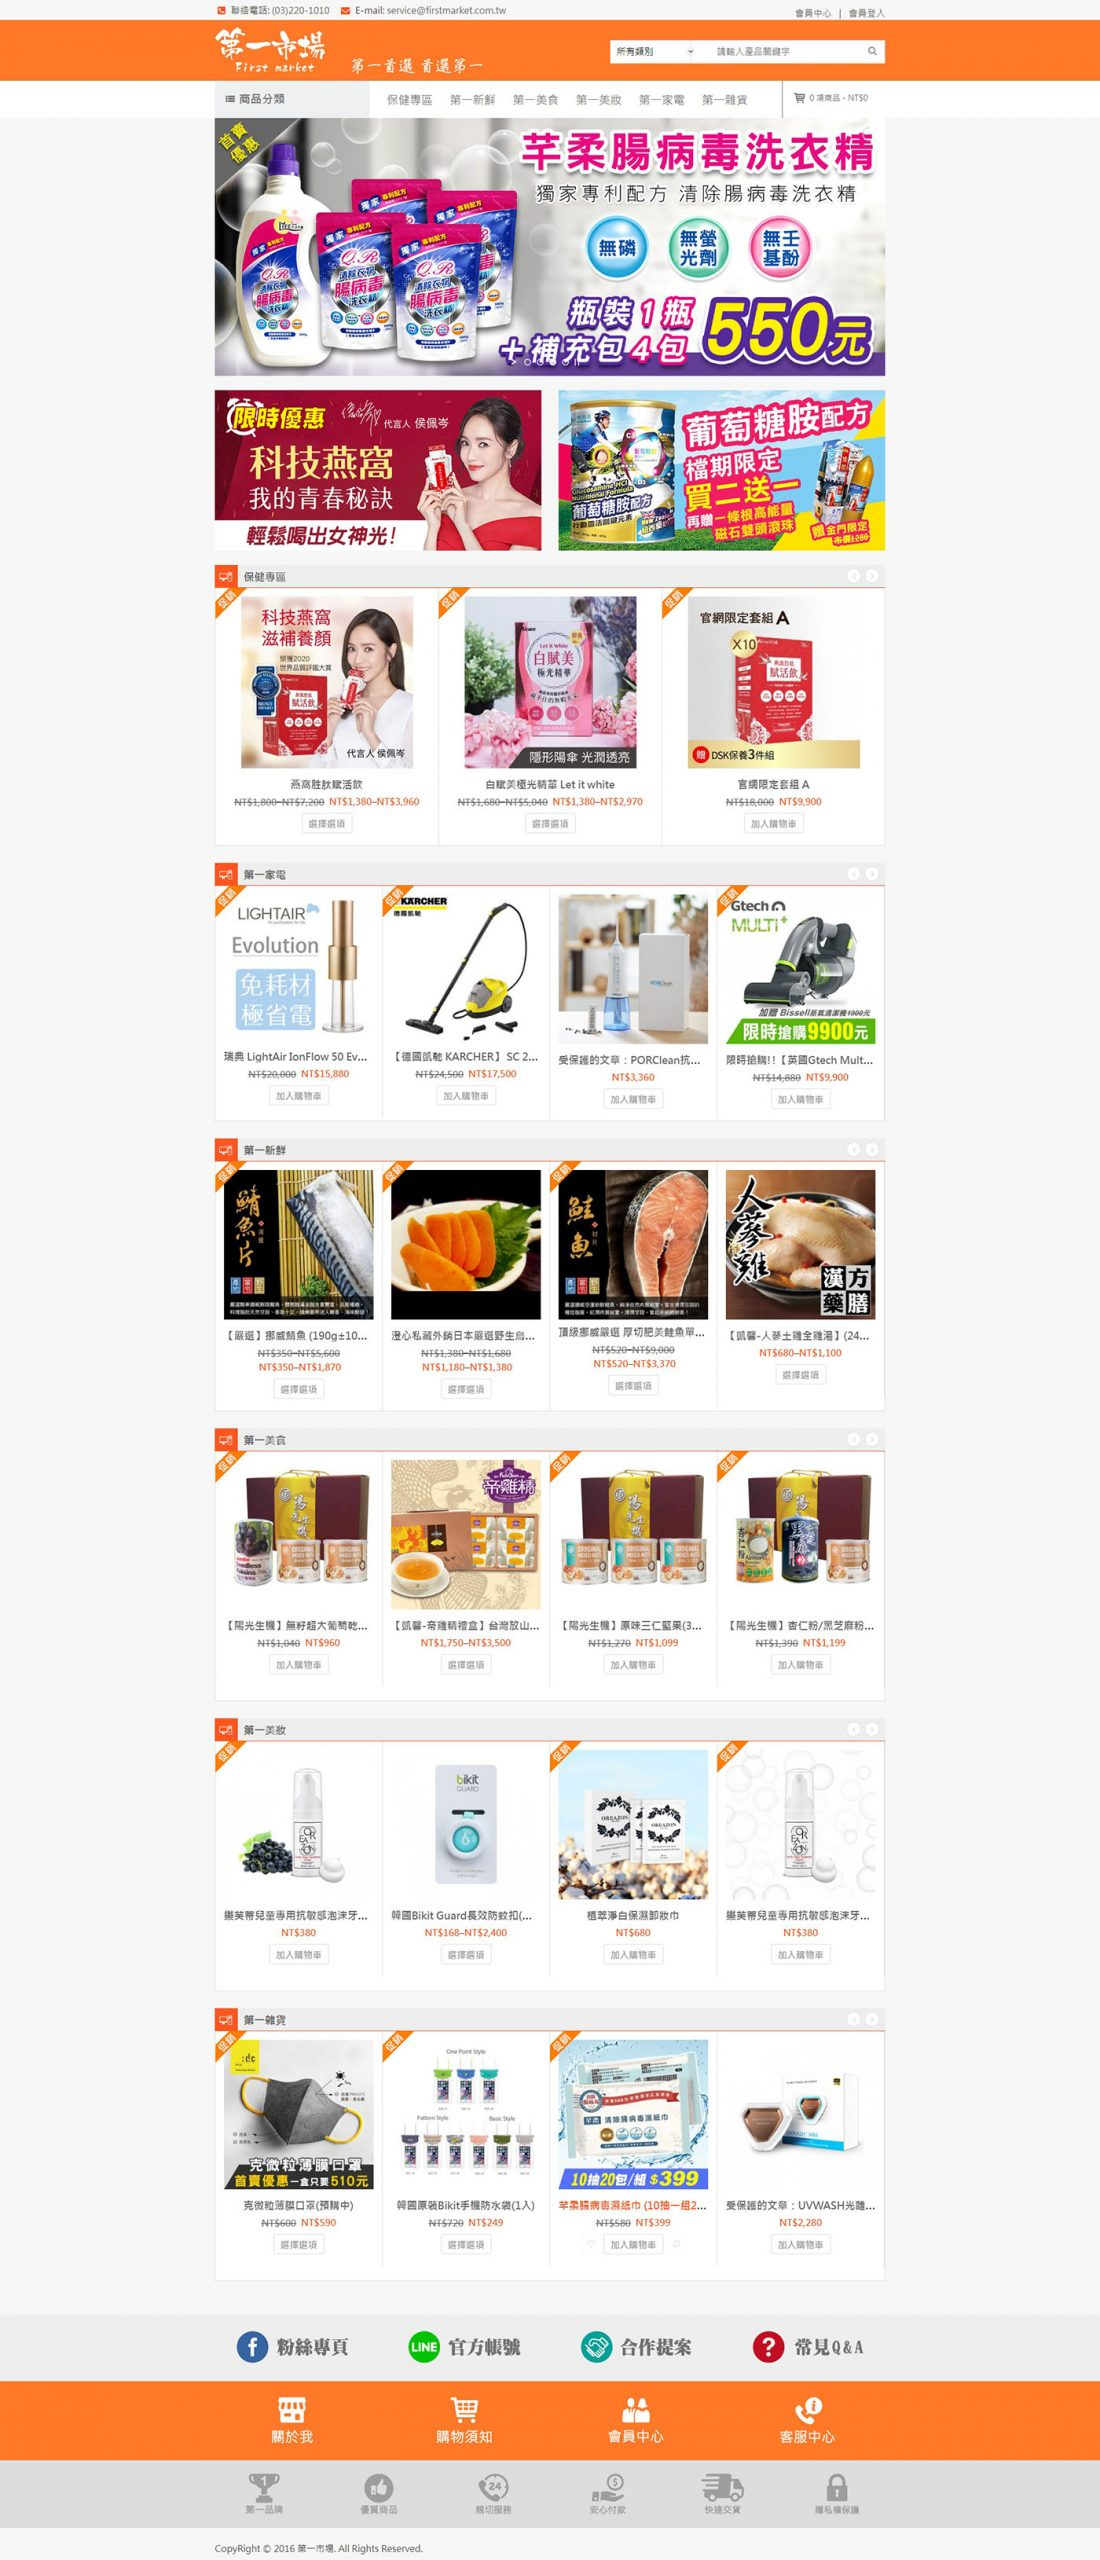 firstmarket page scaled